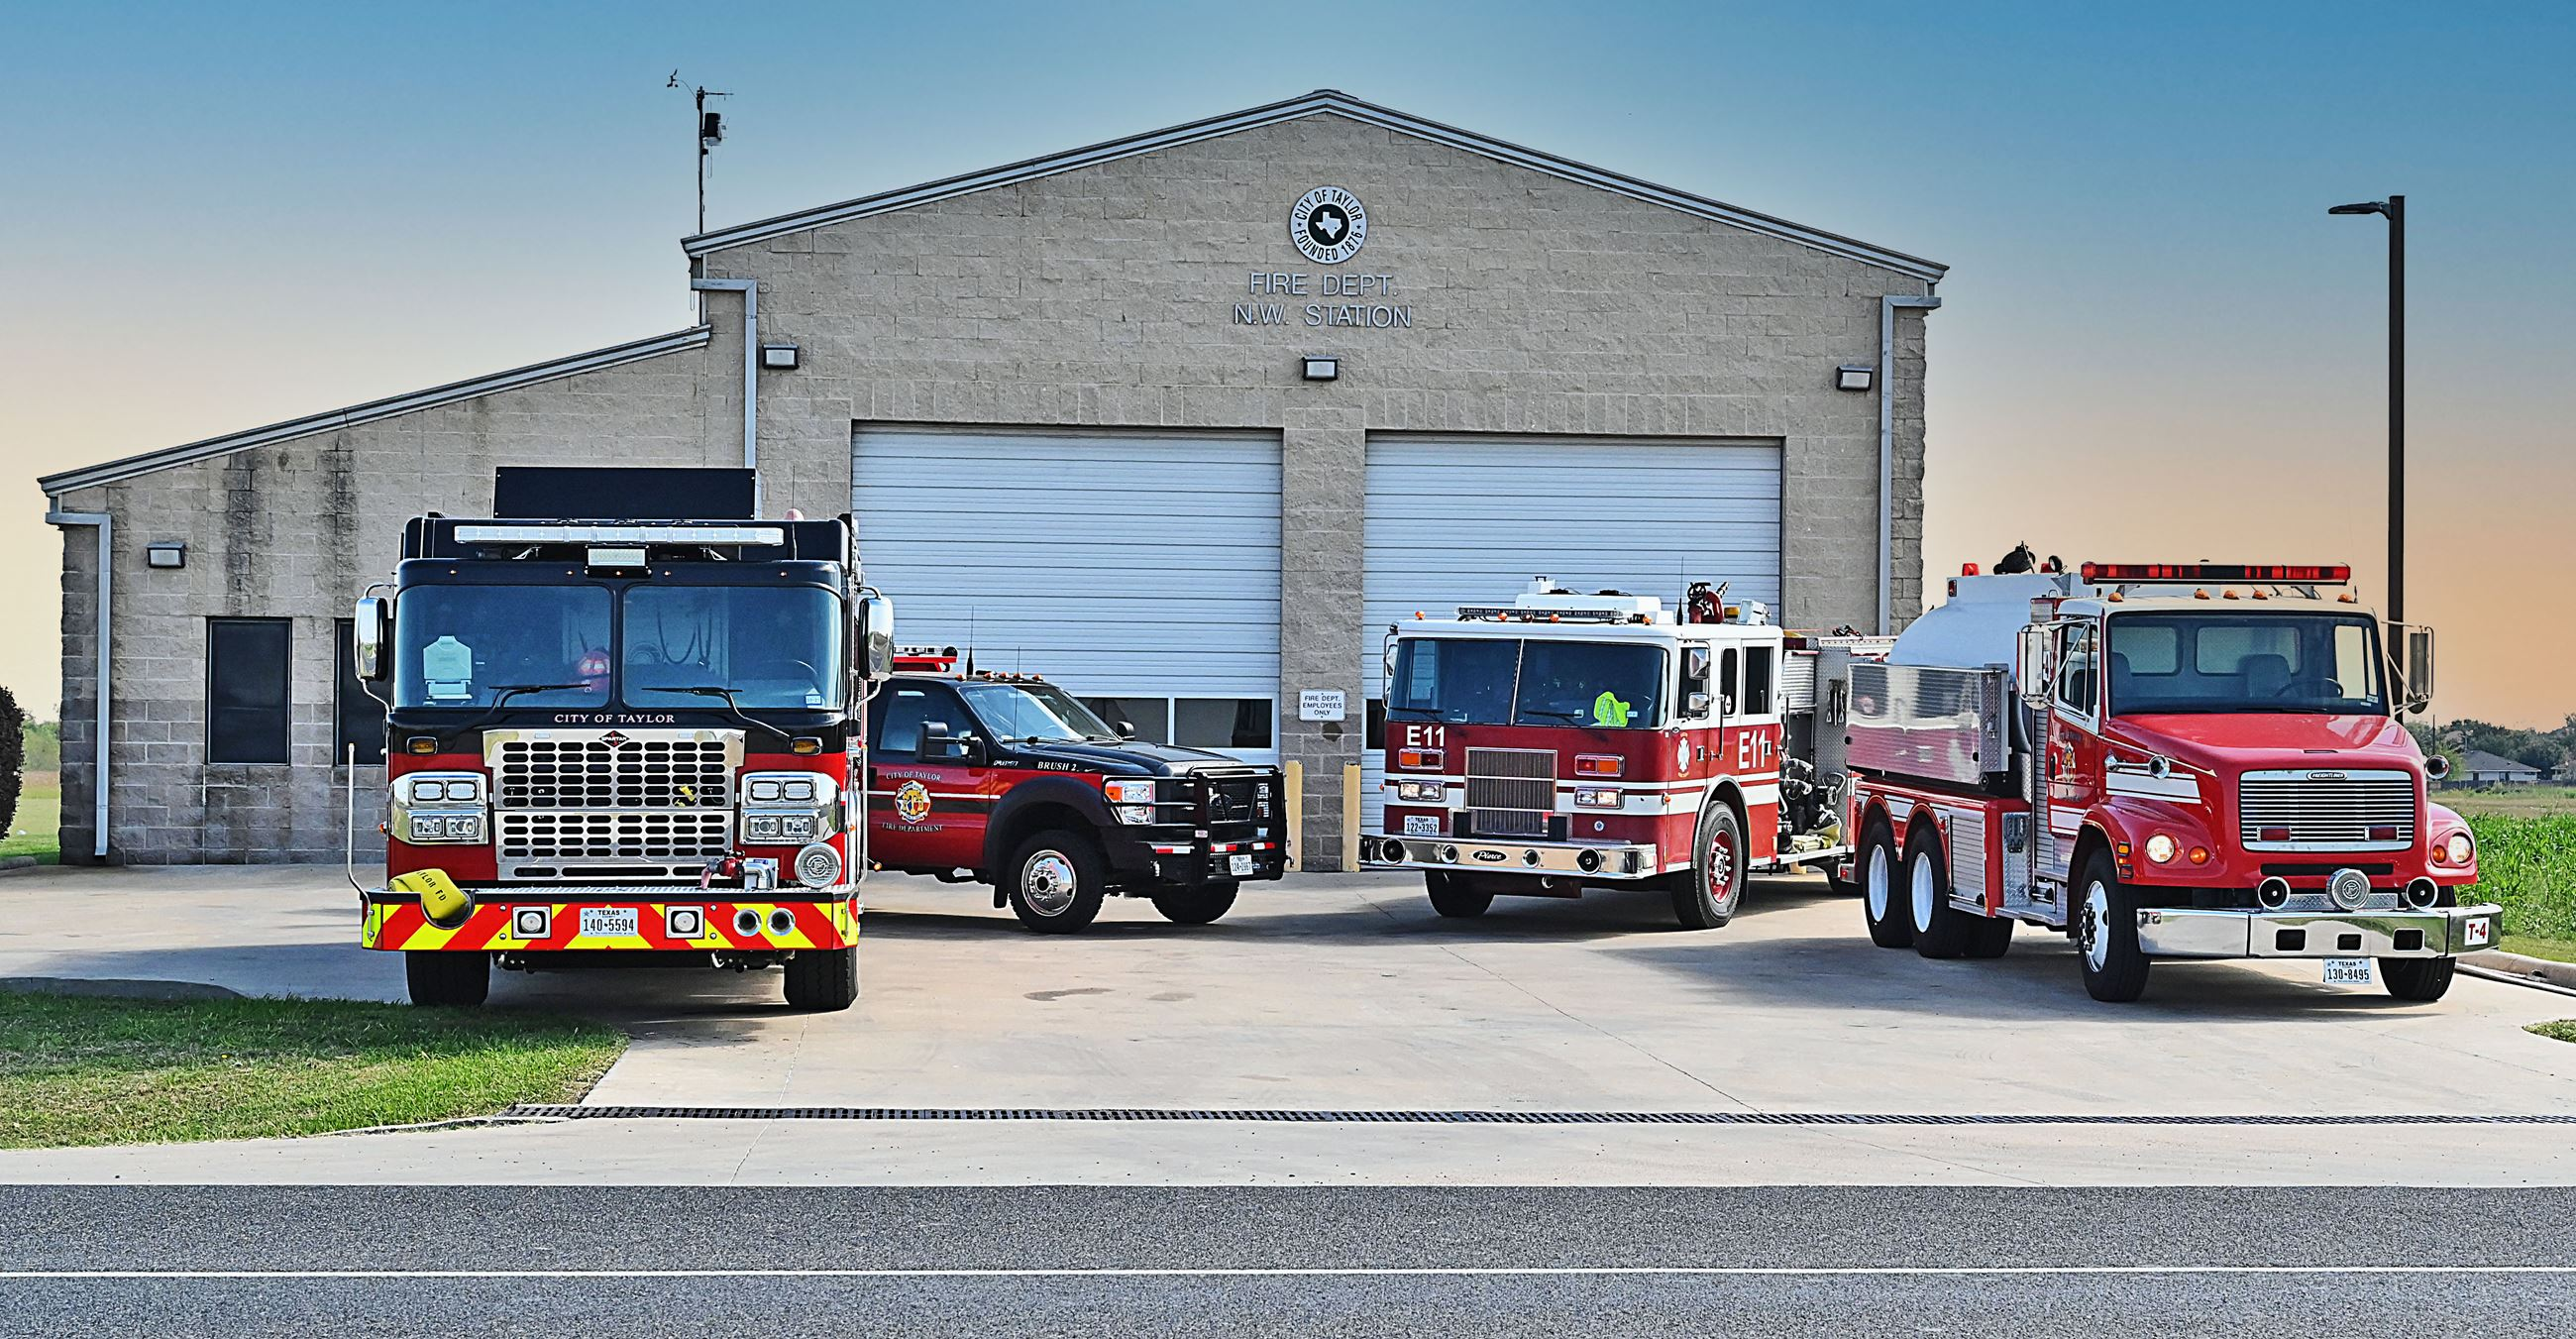 Taylor Fire Department Station 2 with trucks lined up.